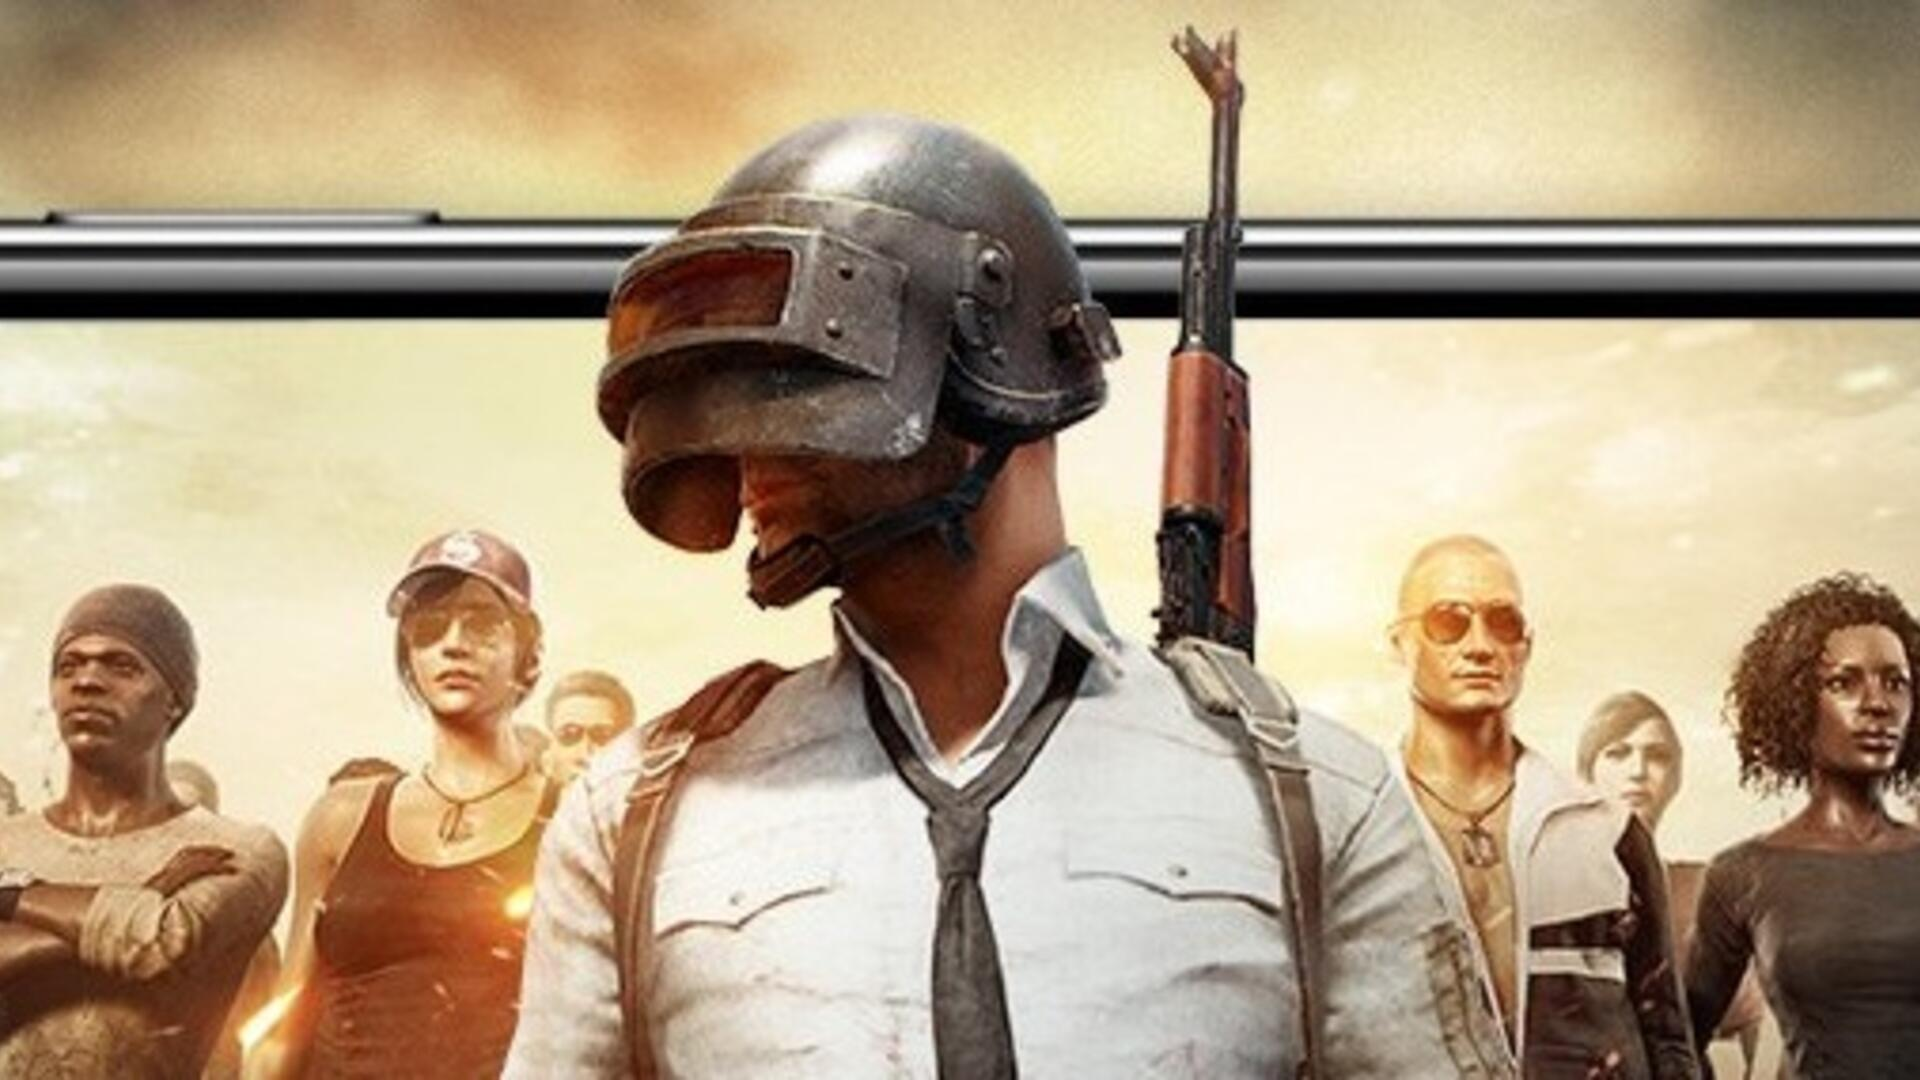 PUBG Mobile Now Has First-Person Mode on iOS and Android | USgamer